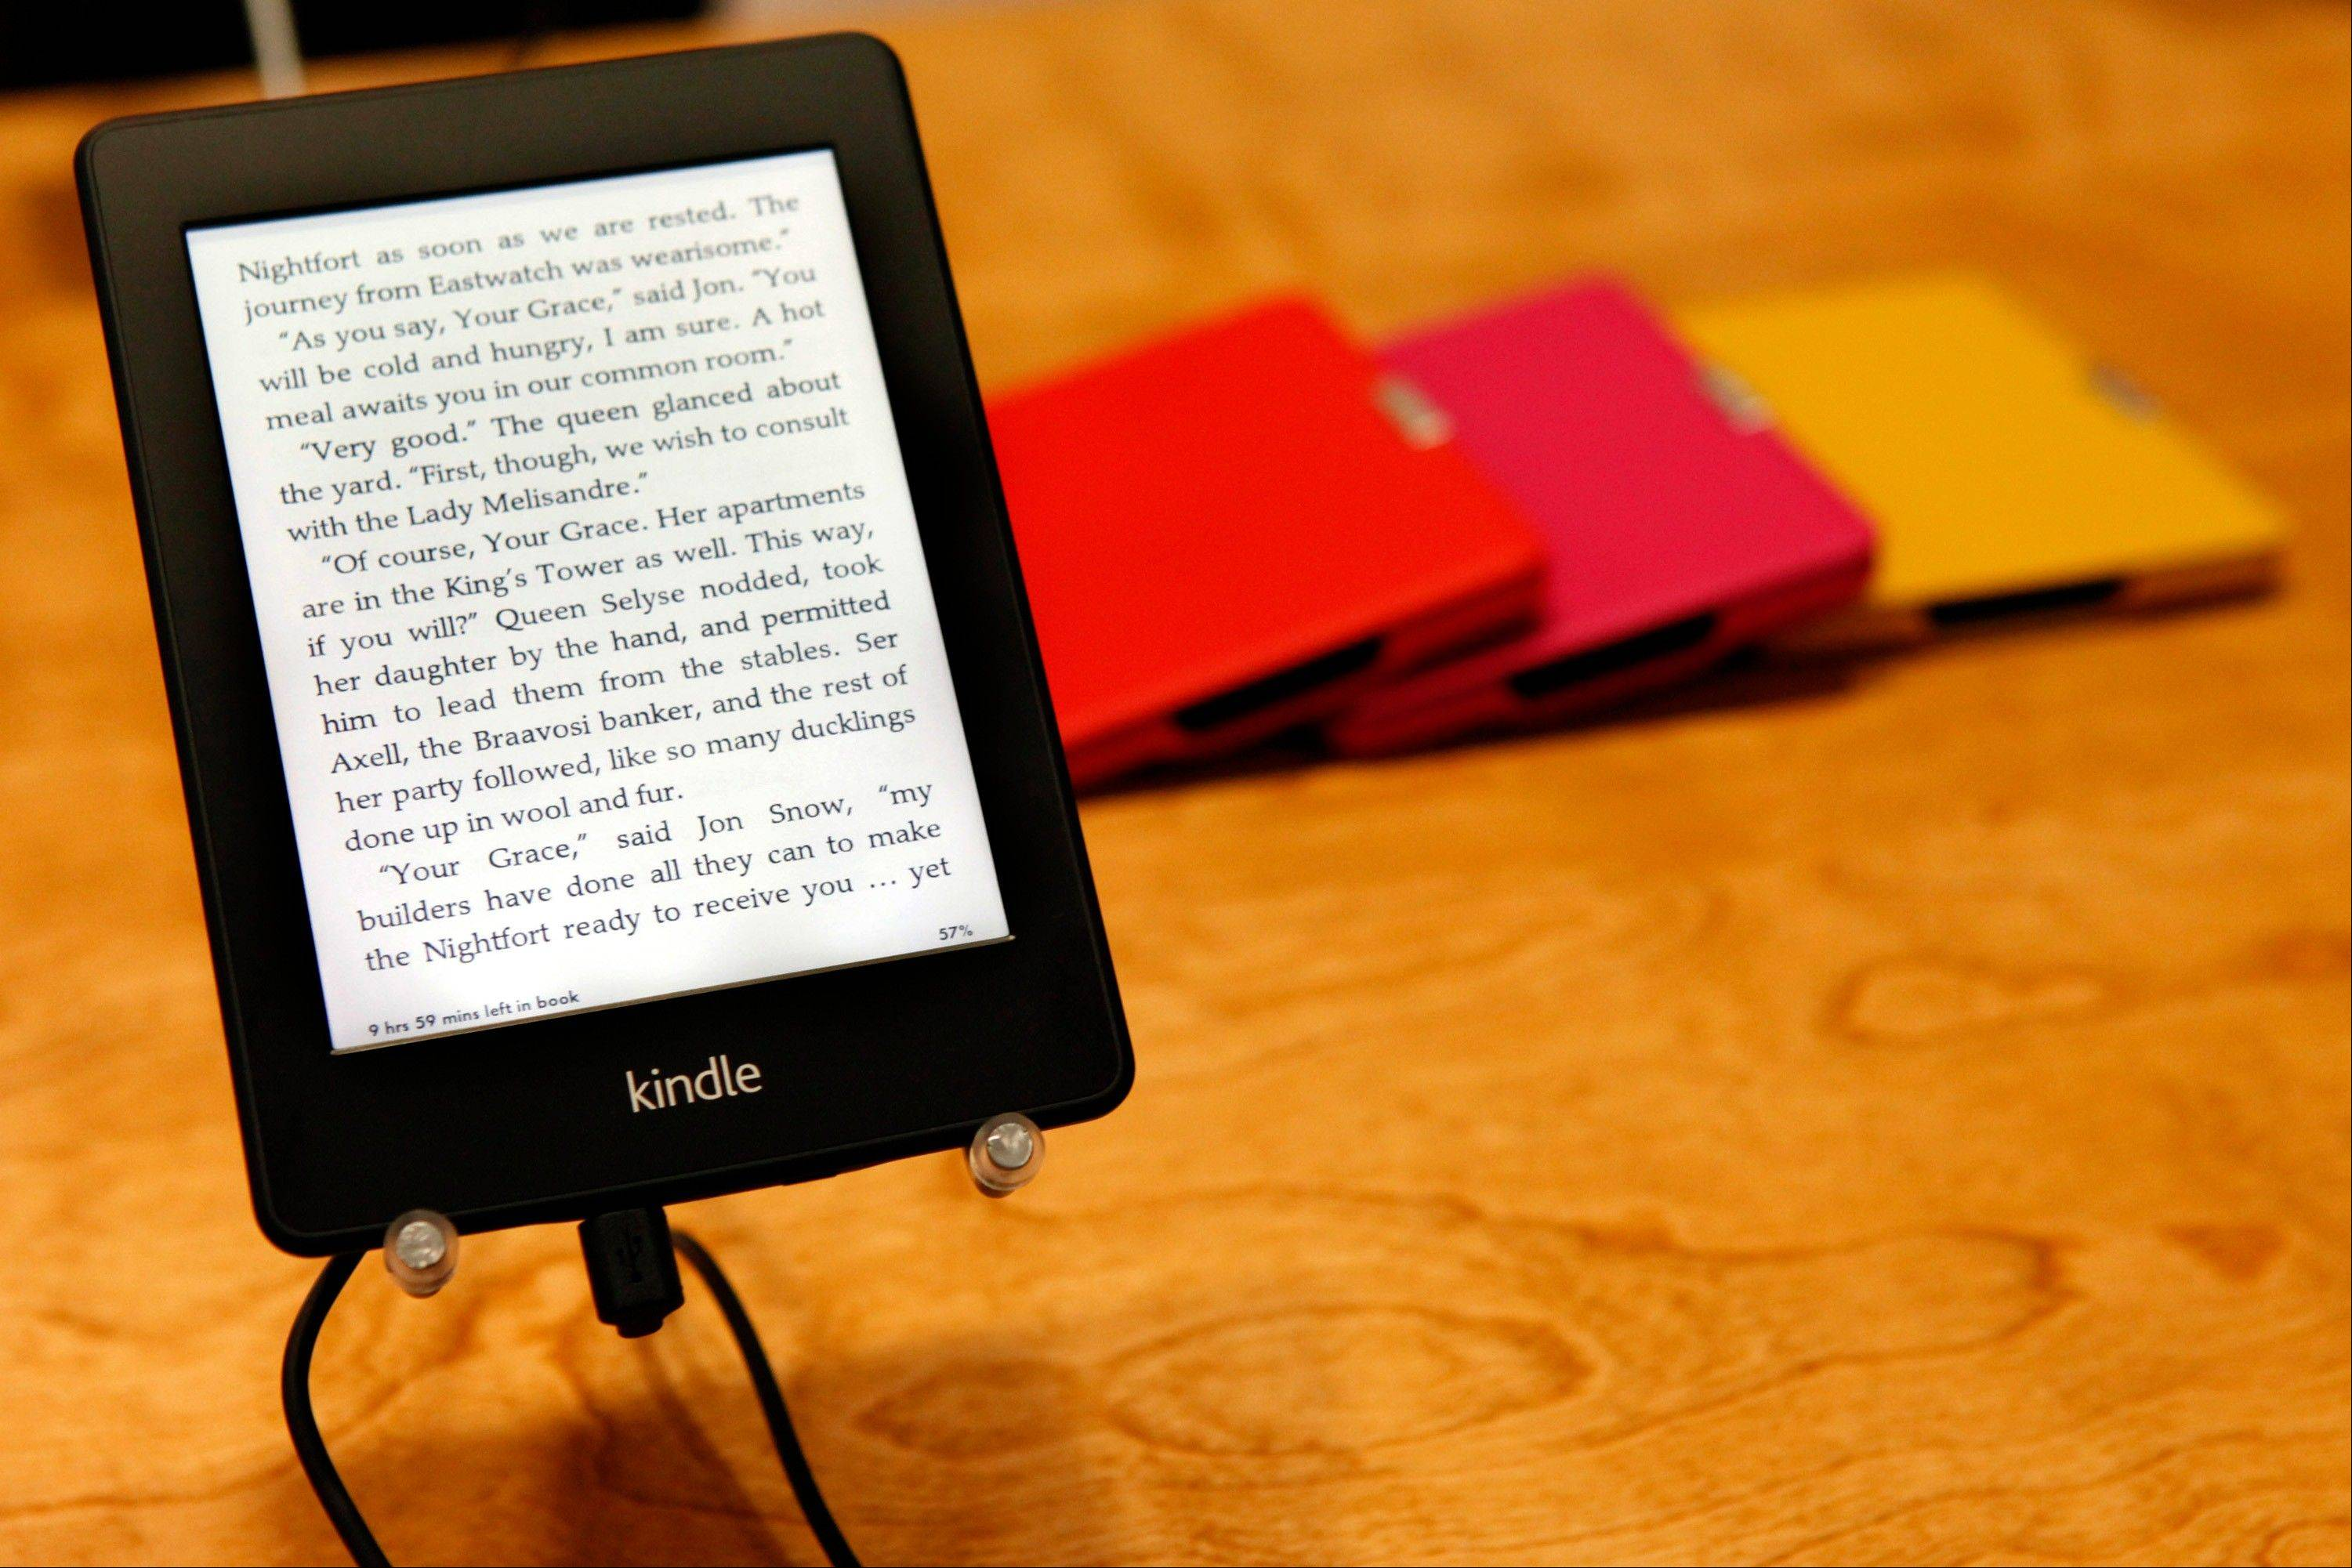 Amazon.com, Inc.'s Kindle Paperwhite tablet sits on display after a news conference in Santa M